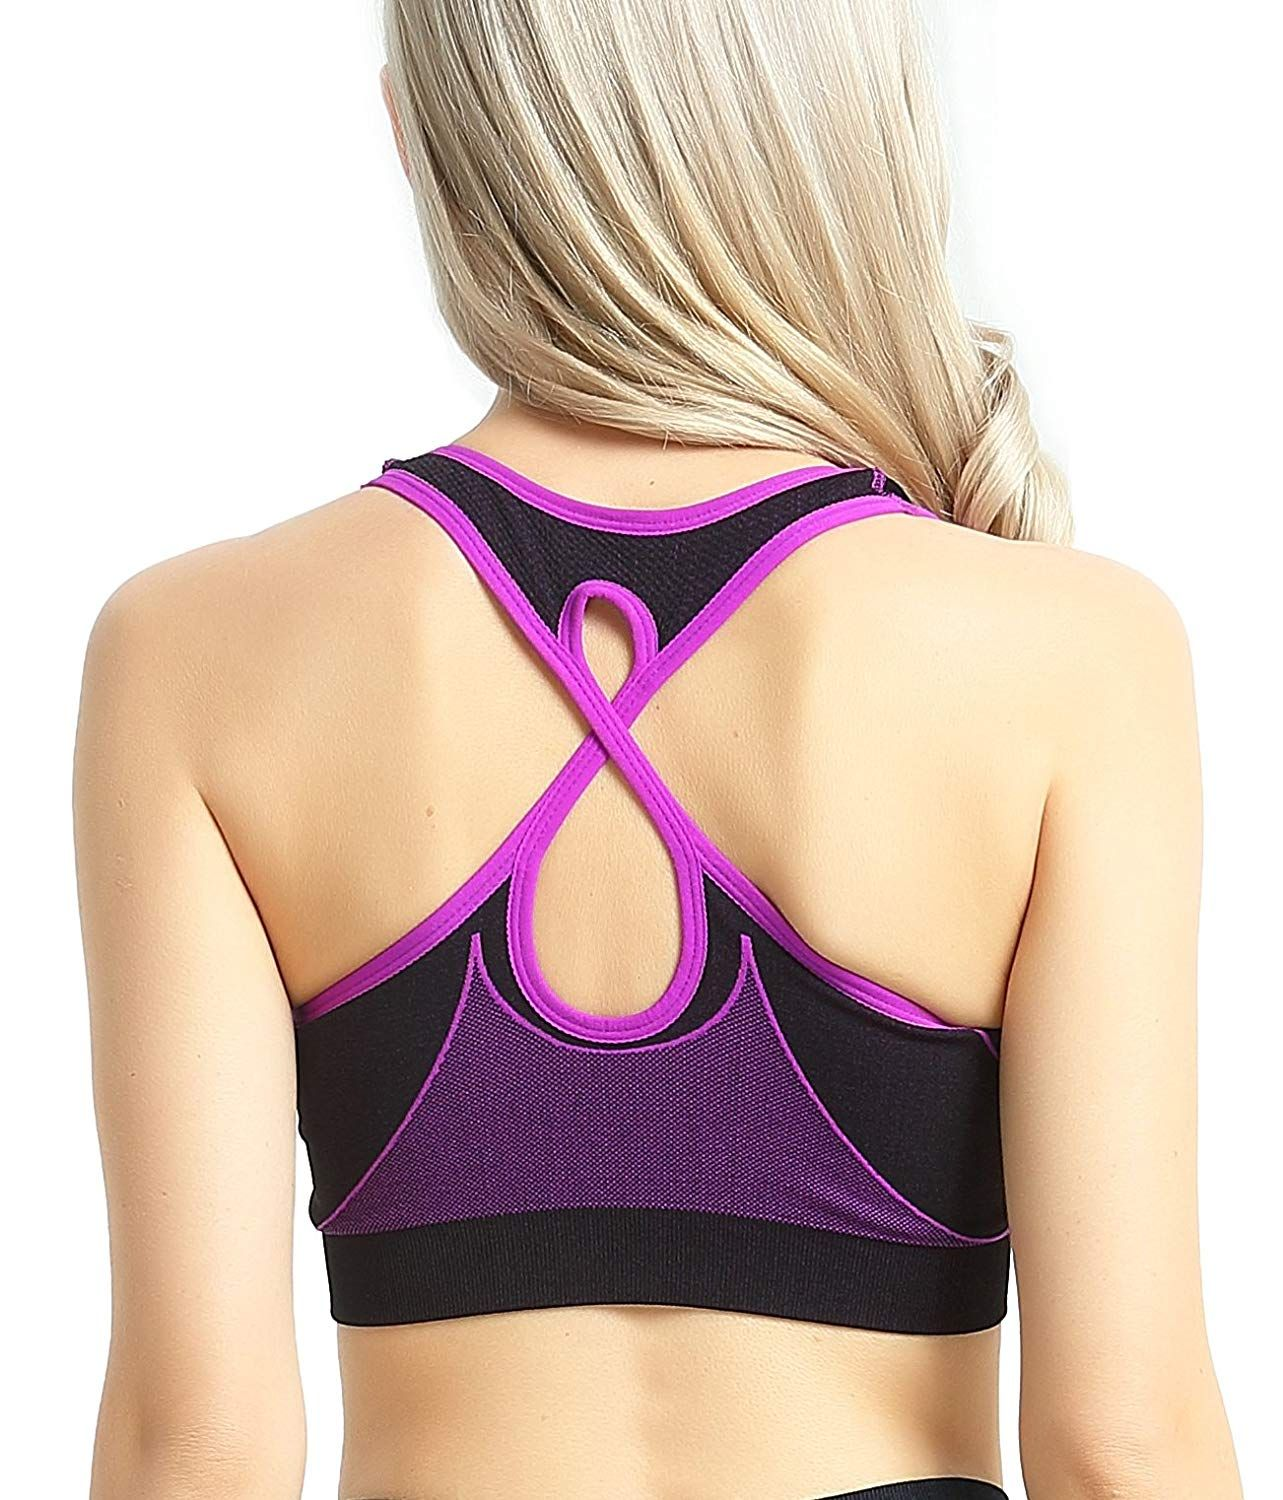 e33831f2c989f Capricia O dare Women s Sports Bras Seamless Racerback Wireless Padded for Workout  Yoga at Amazon